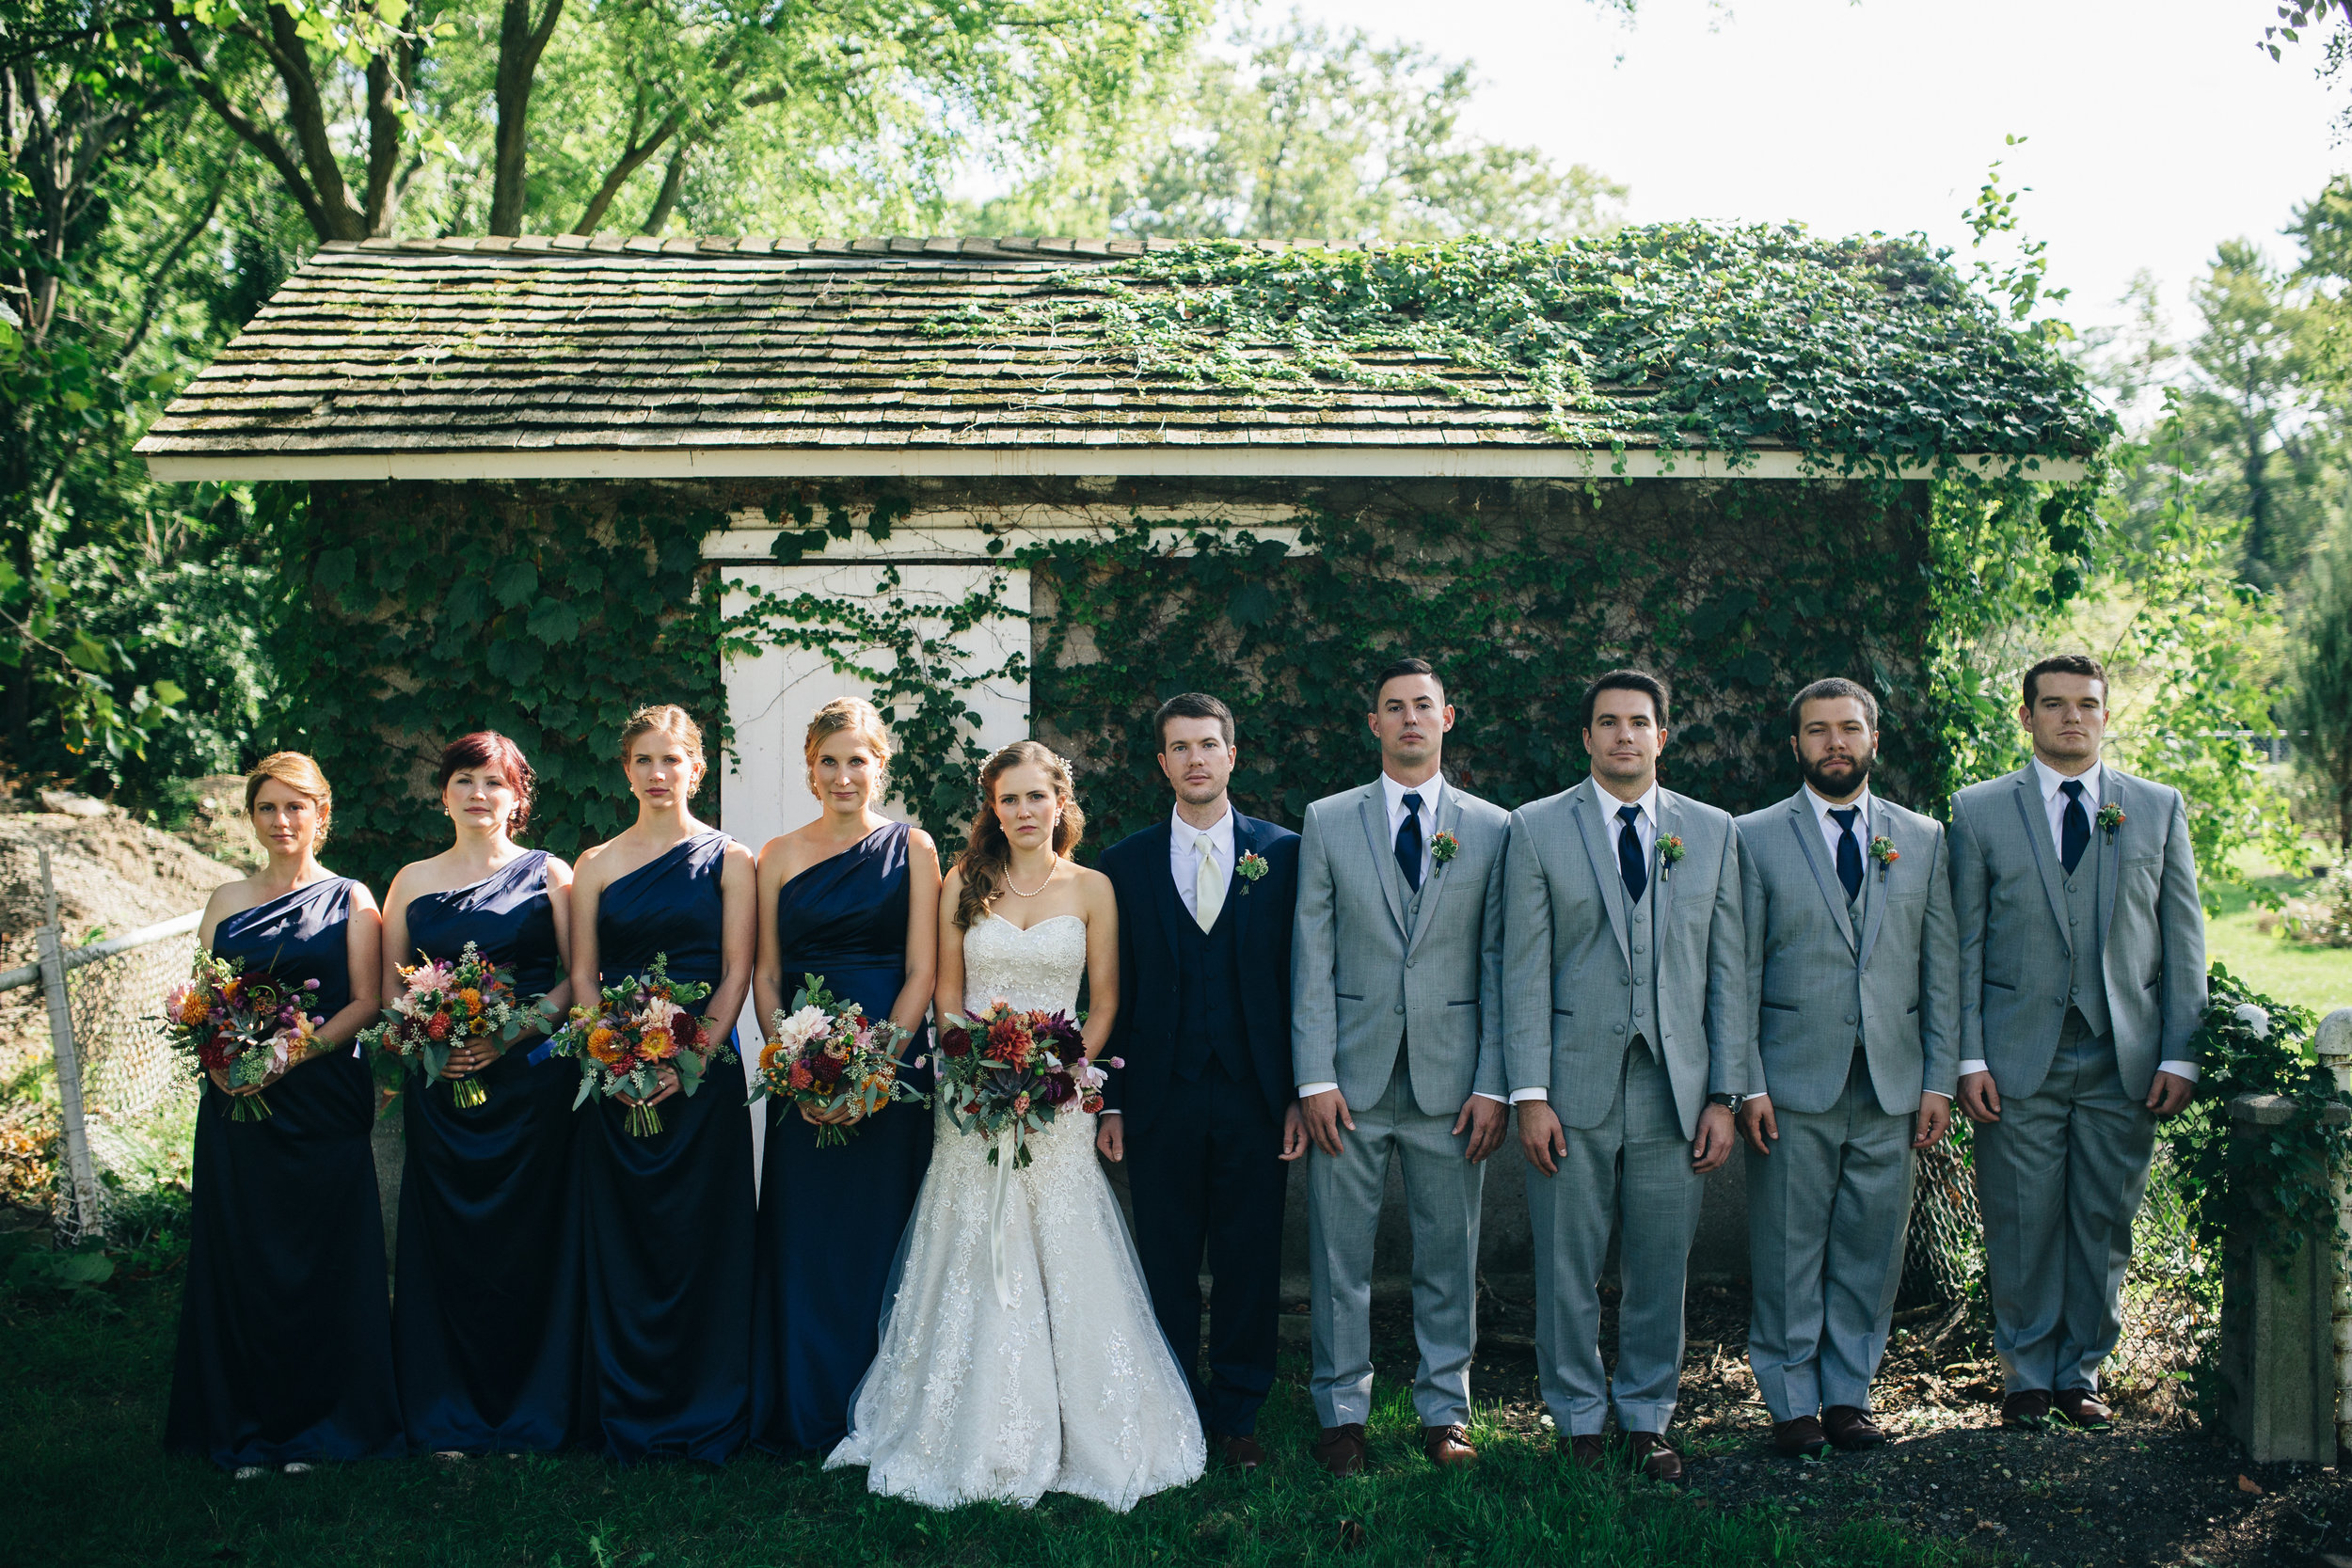 Bridal party inspiration for Fall wedding in Ohio